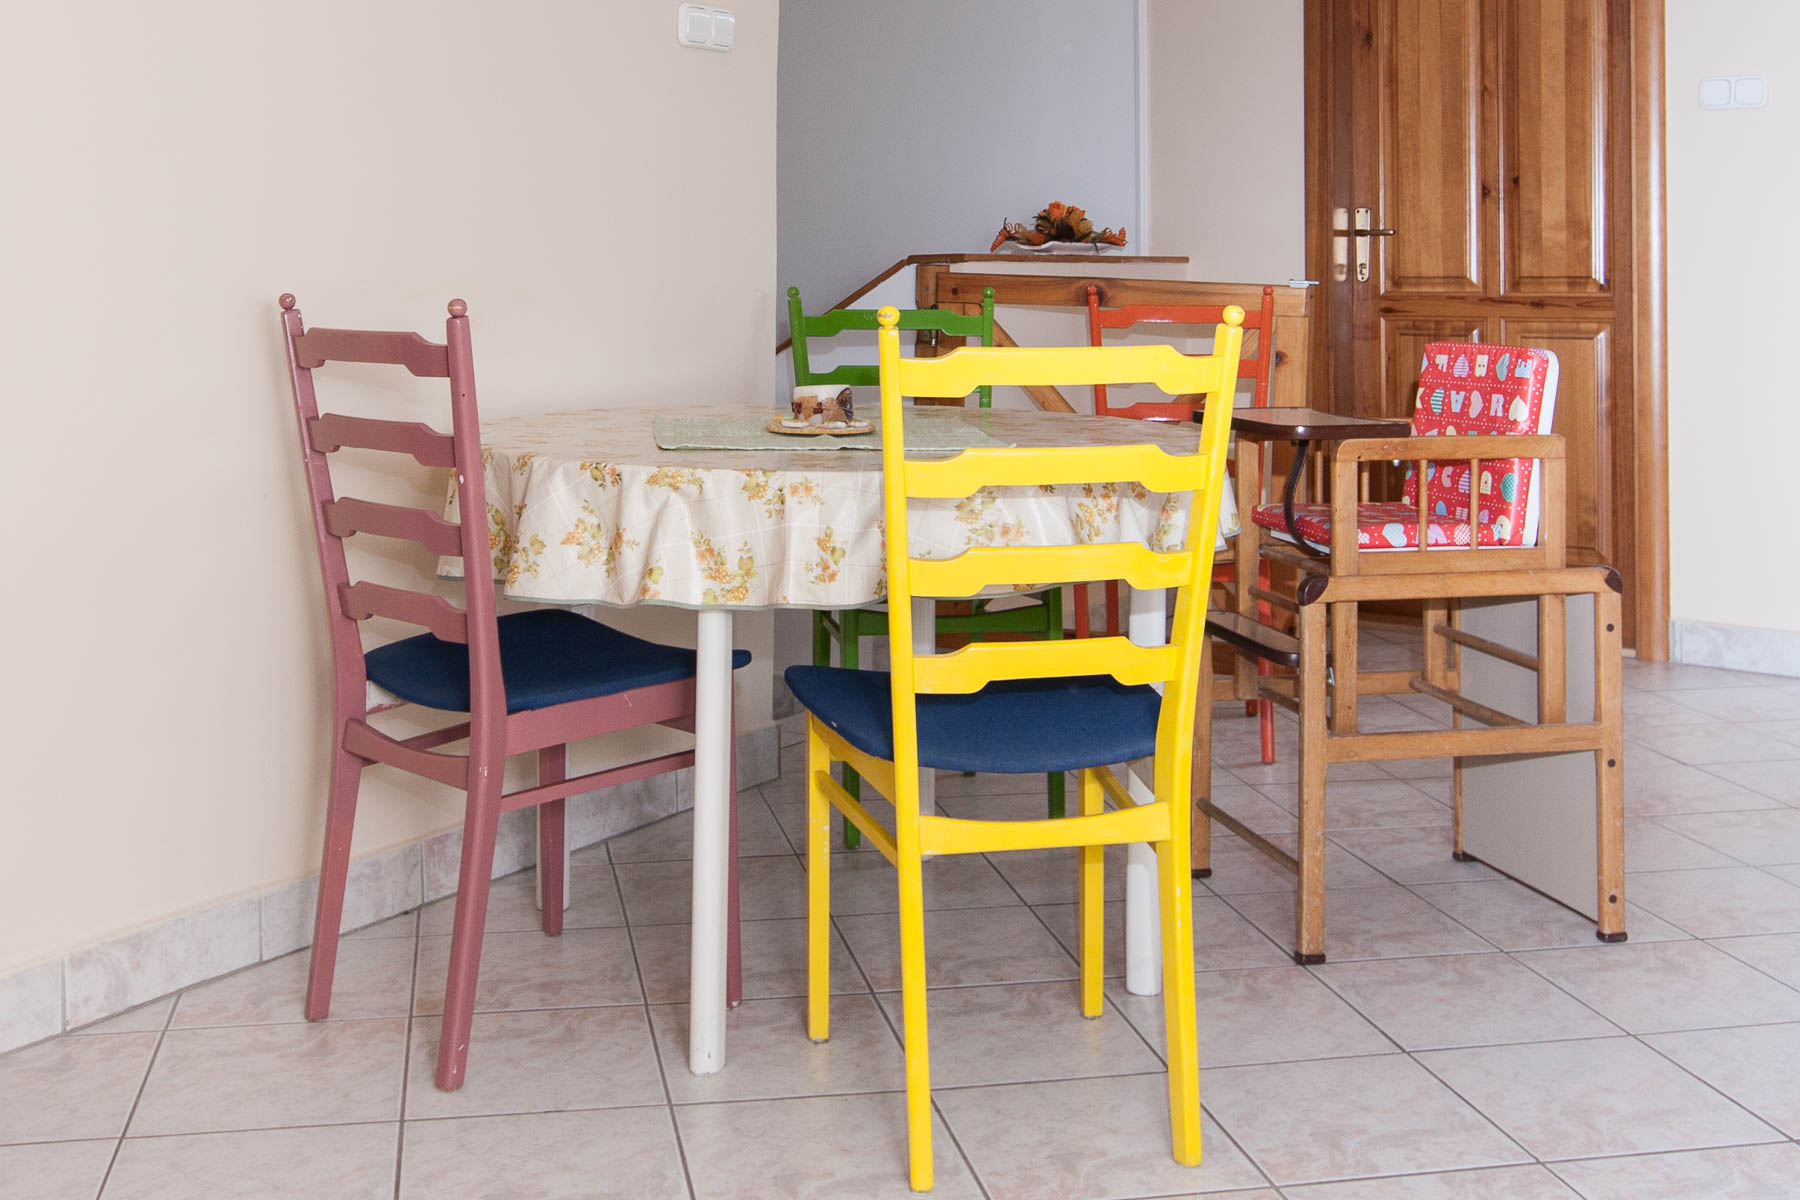 Table with chairs